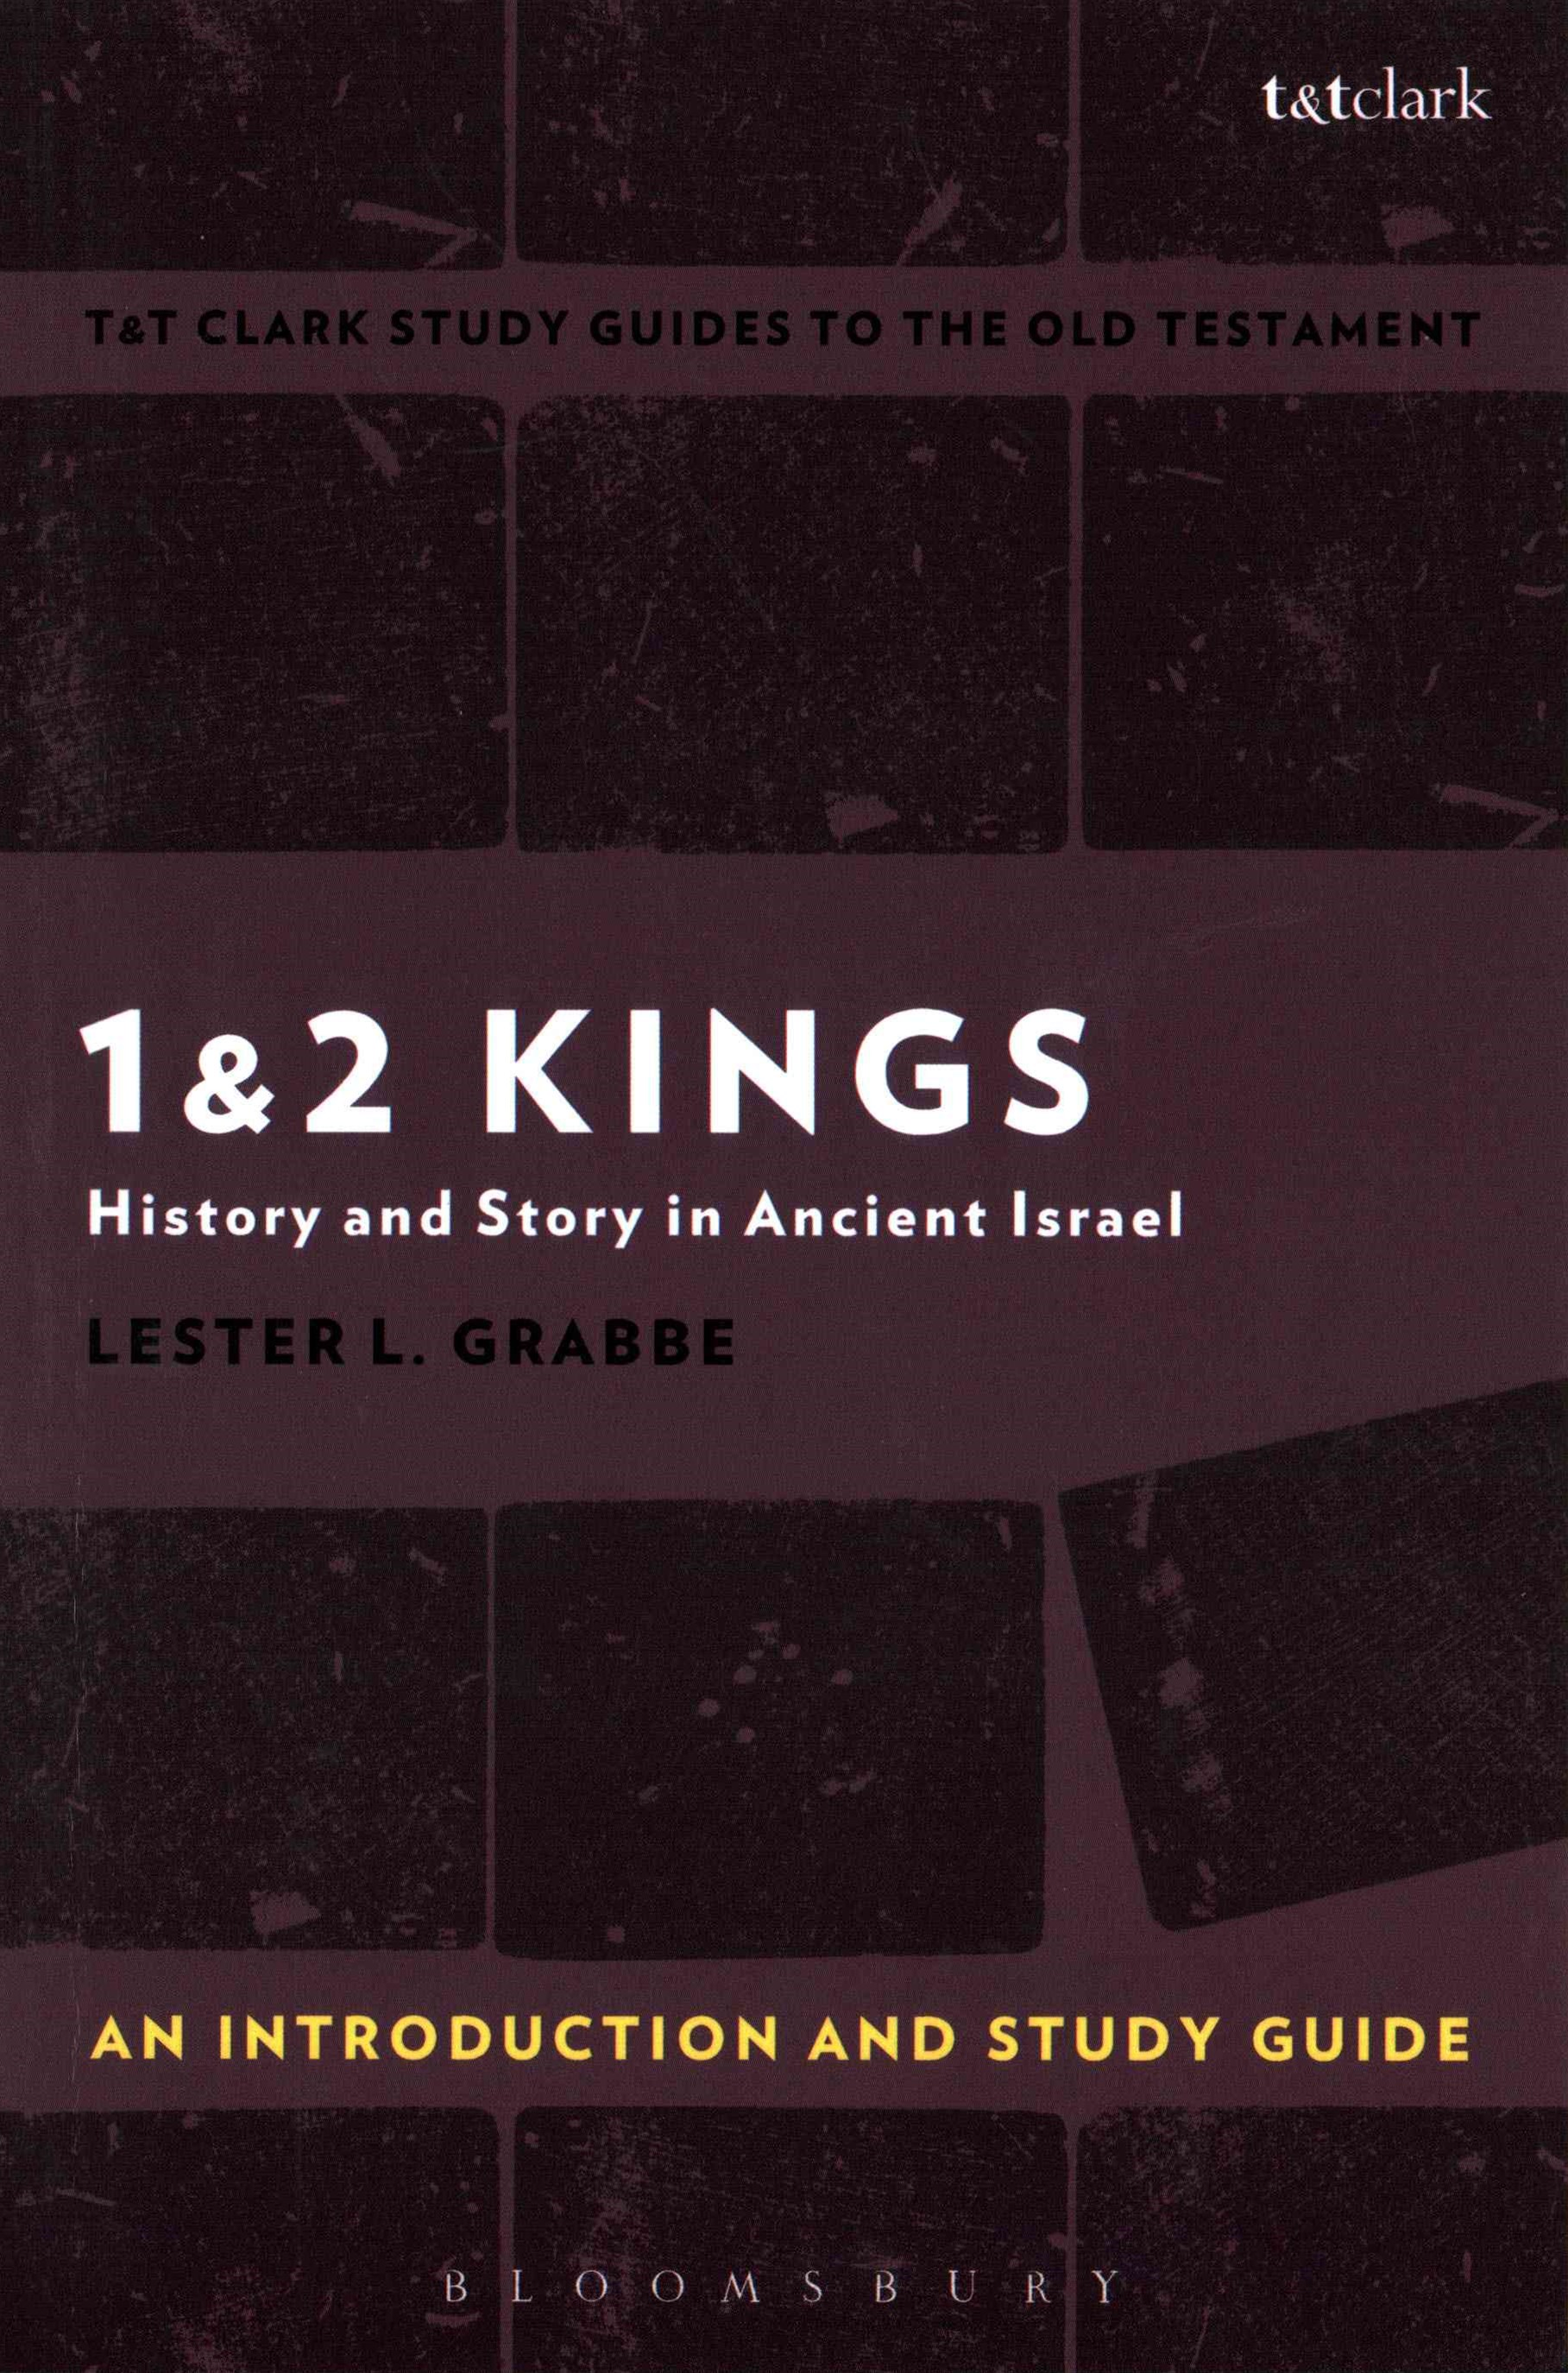 1 & 2 Kings: An Introduction and Study Guide